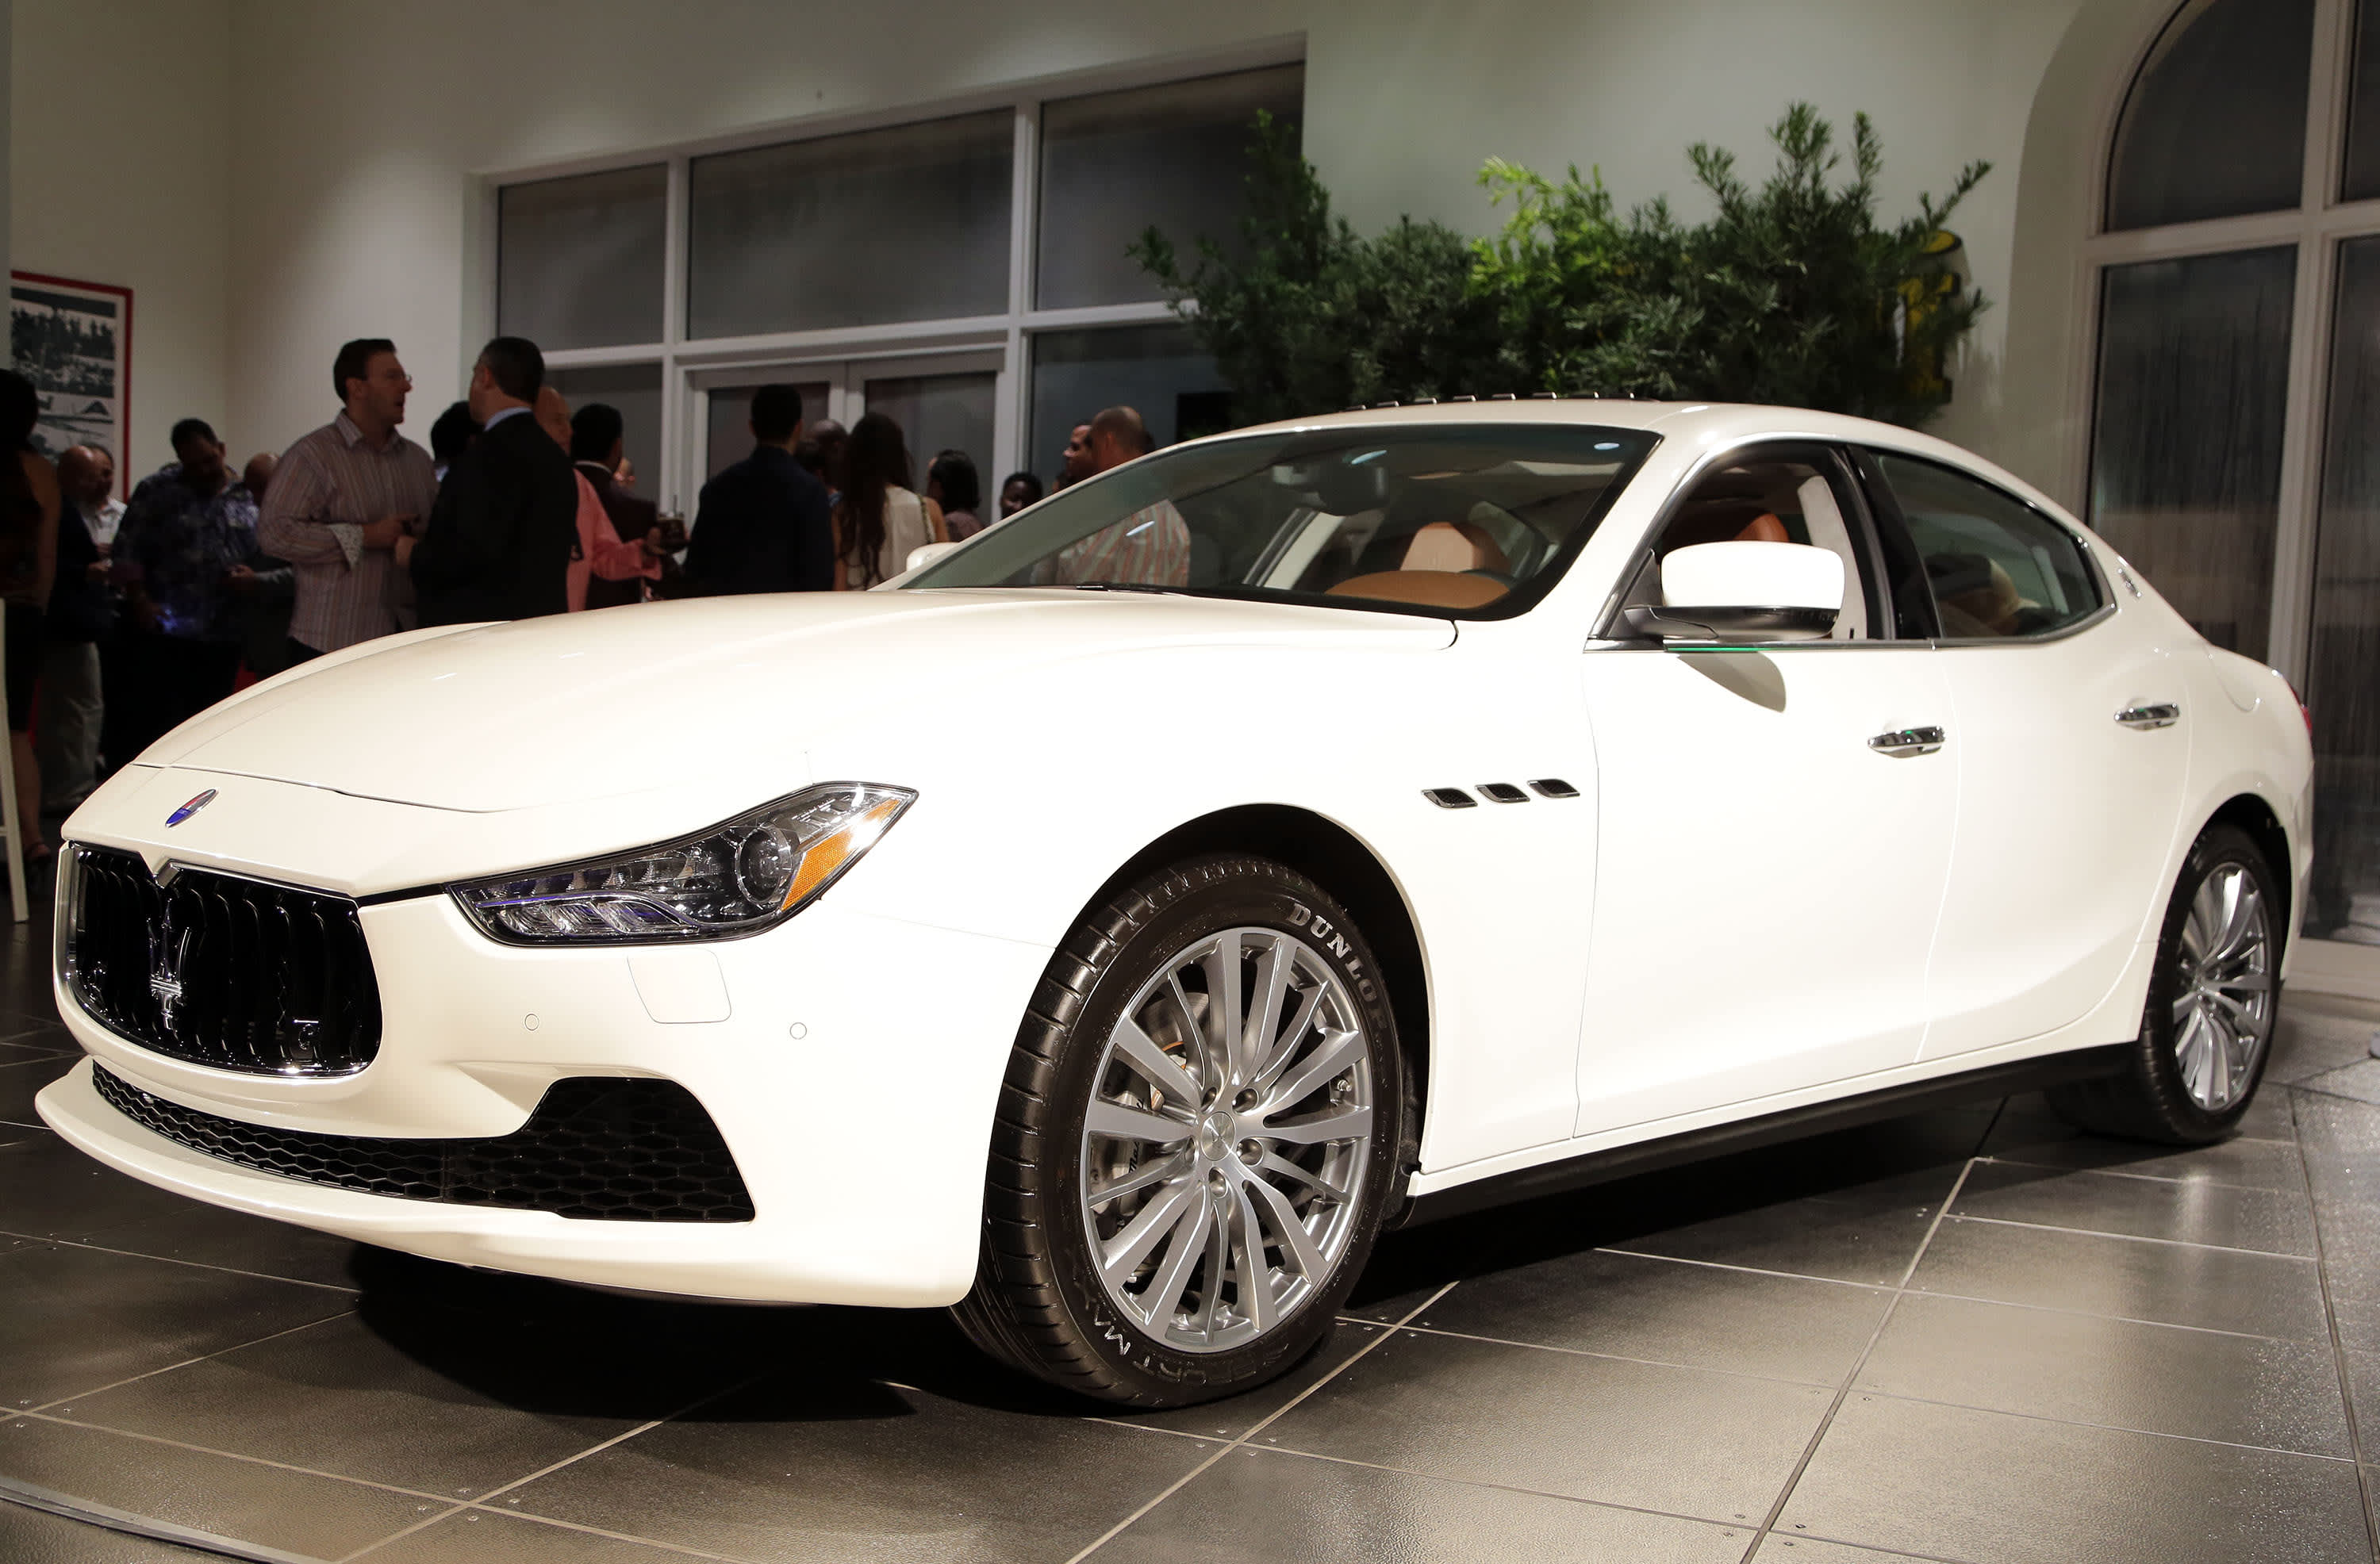 Fiat launches lower-cost Maserati at $68,000